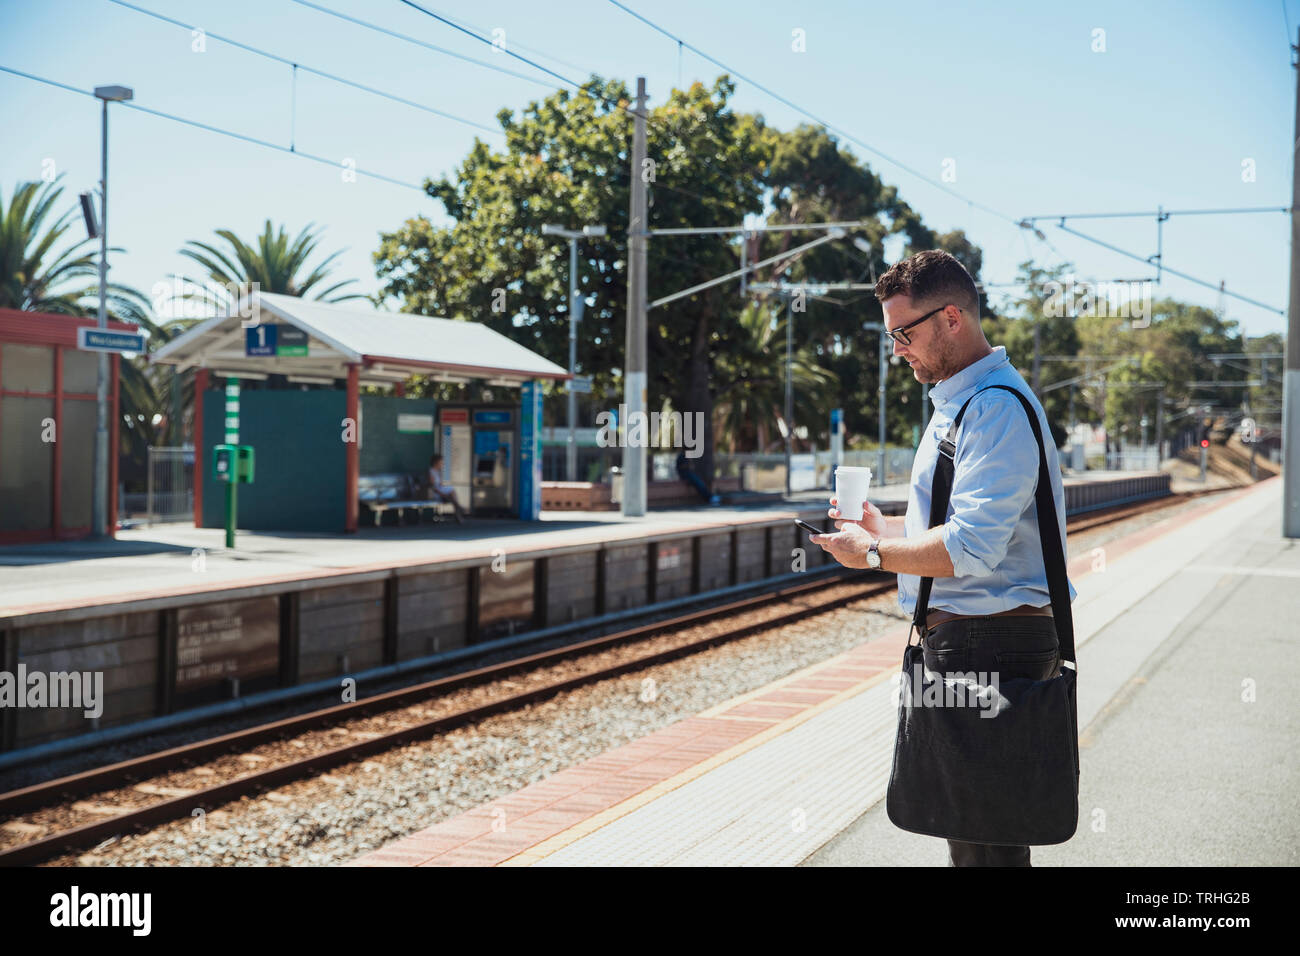 A side-view shot of a mid-adult caucasian businessman waiting at a railroad station platform with a cup of coffee in his hand, he is catching the trai - Stock Image